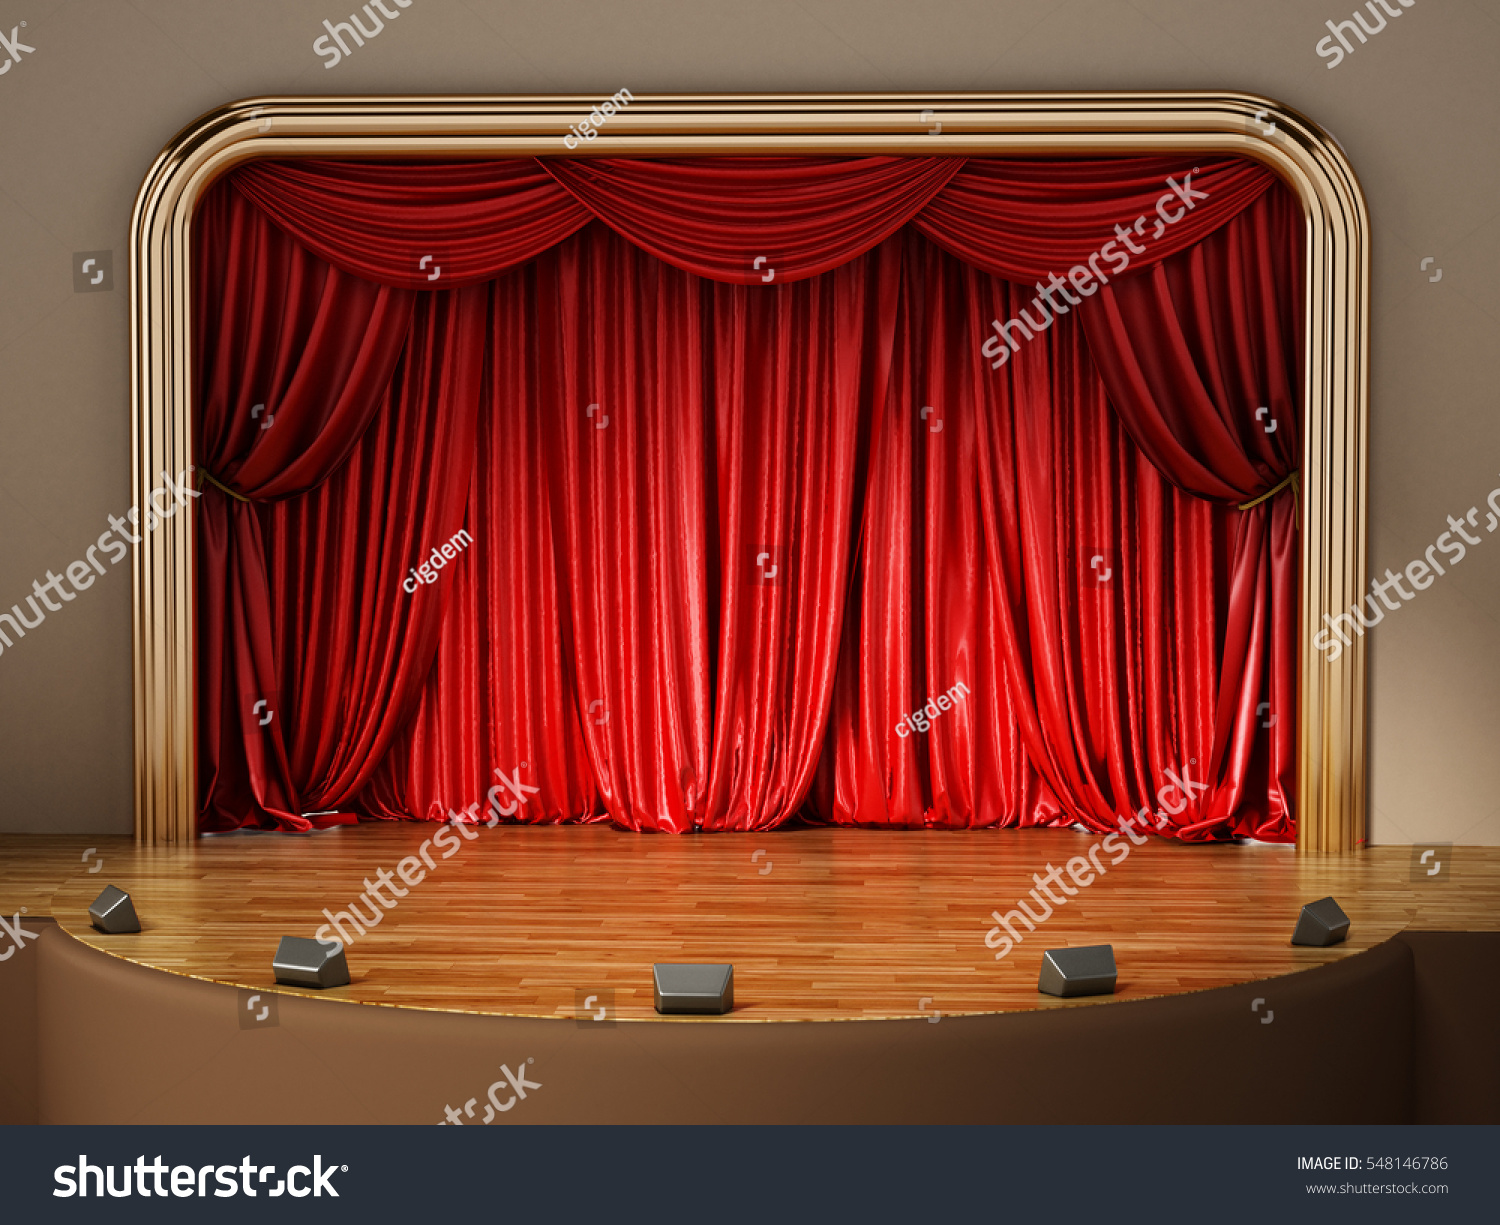 Closed theater curtains - Theater Stage With Closed Red Curtain 3d Illustration